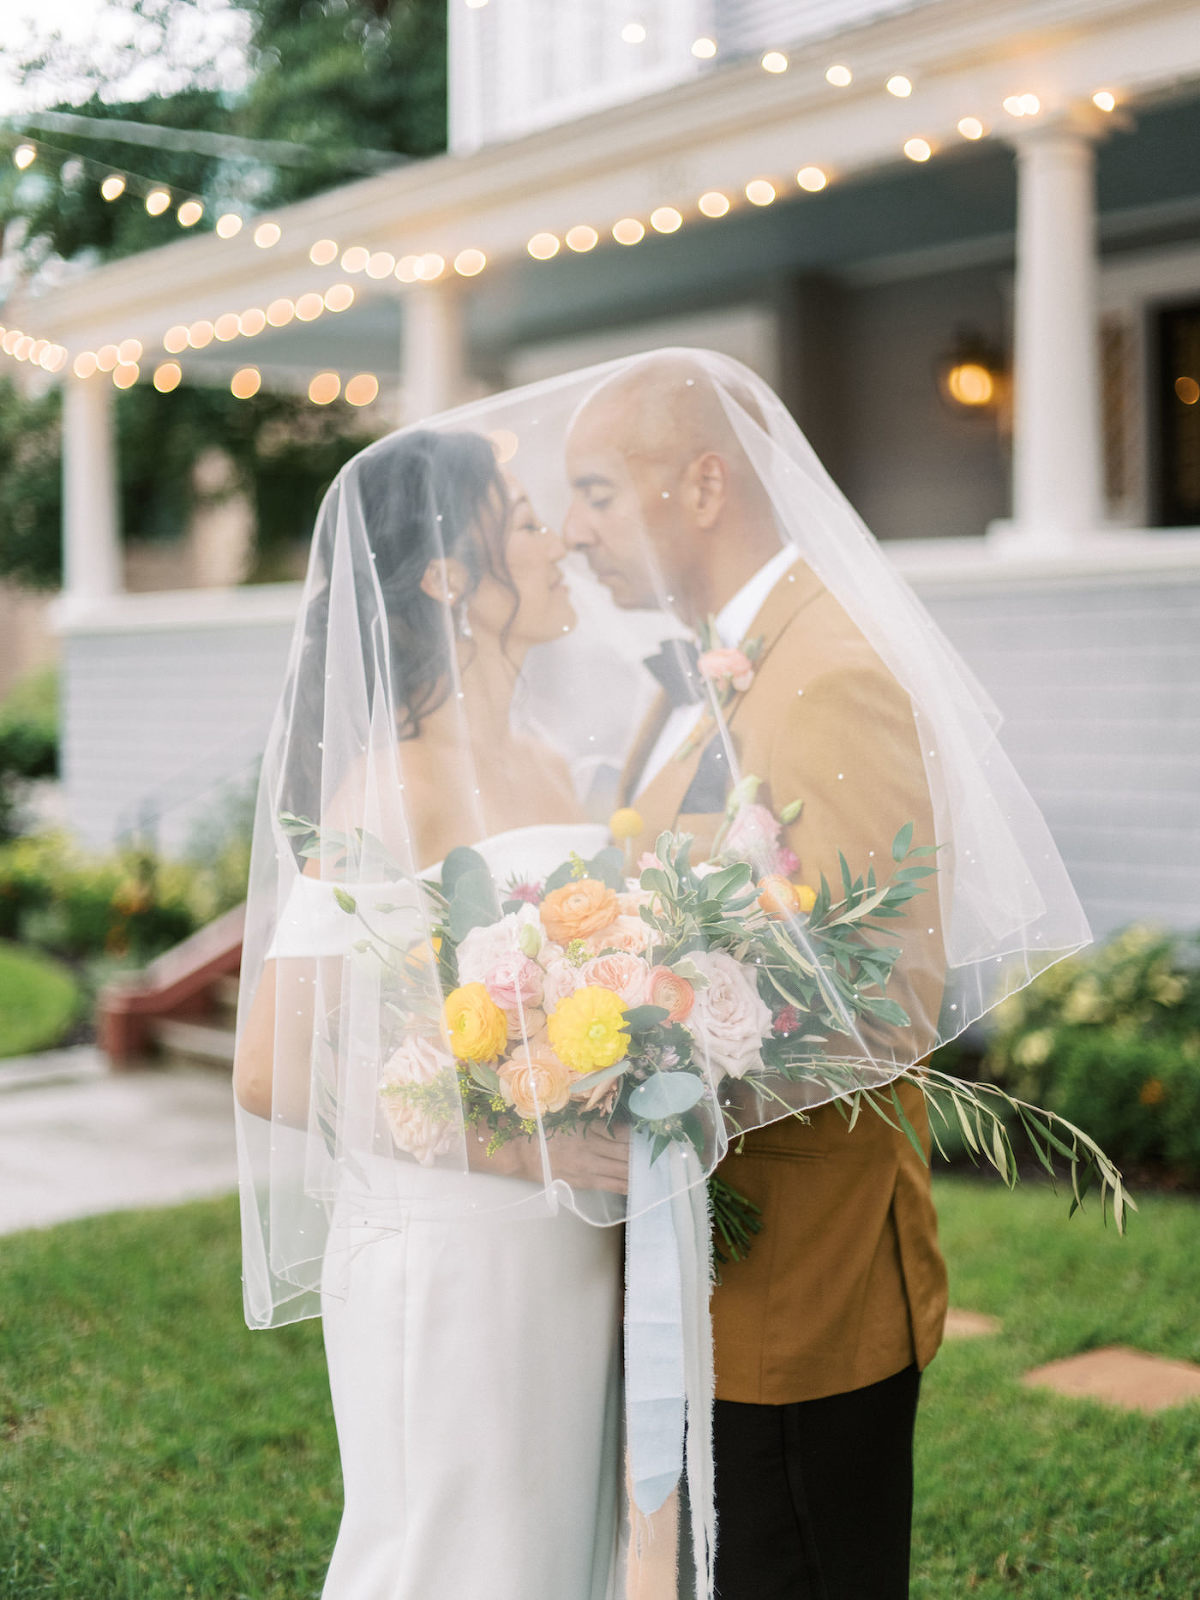 Tampa Bay Bride and Groom Intimate Portrait Under Bridal Veil During Cocktail Hour, Holding Vibrant Bouquet with Yellow, Pink, and Peach Floral Stems with Greenery | Florida Wedding Planner Kelly Kennedy Weddings and Events